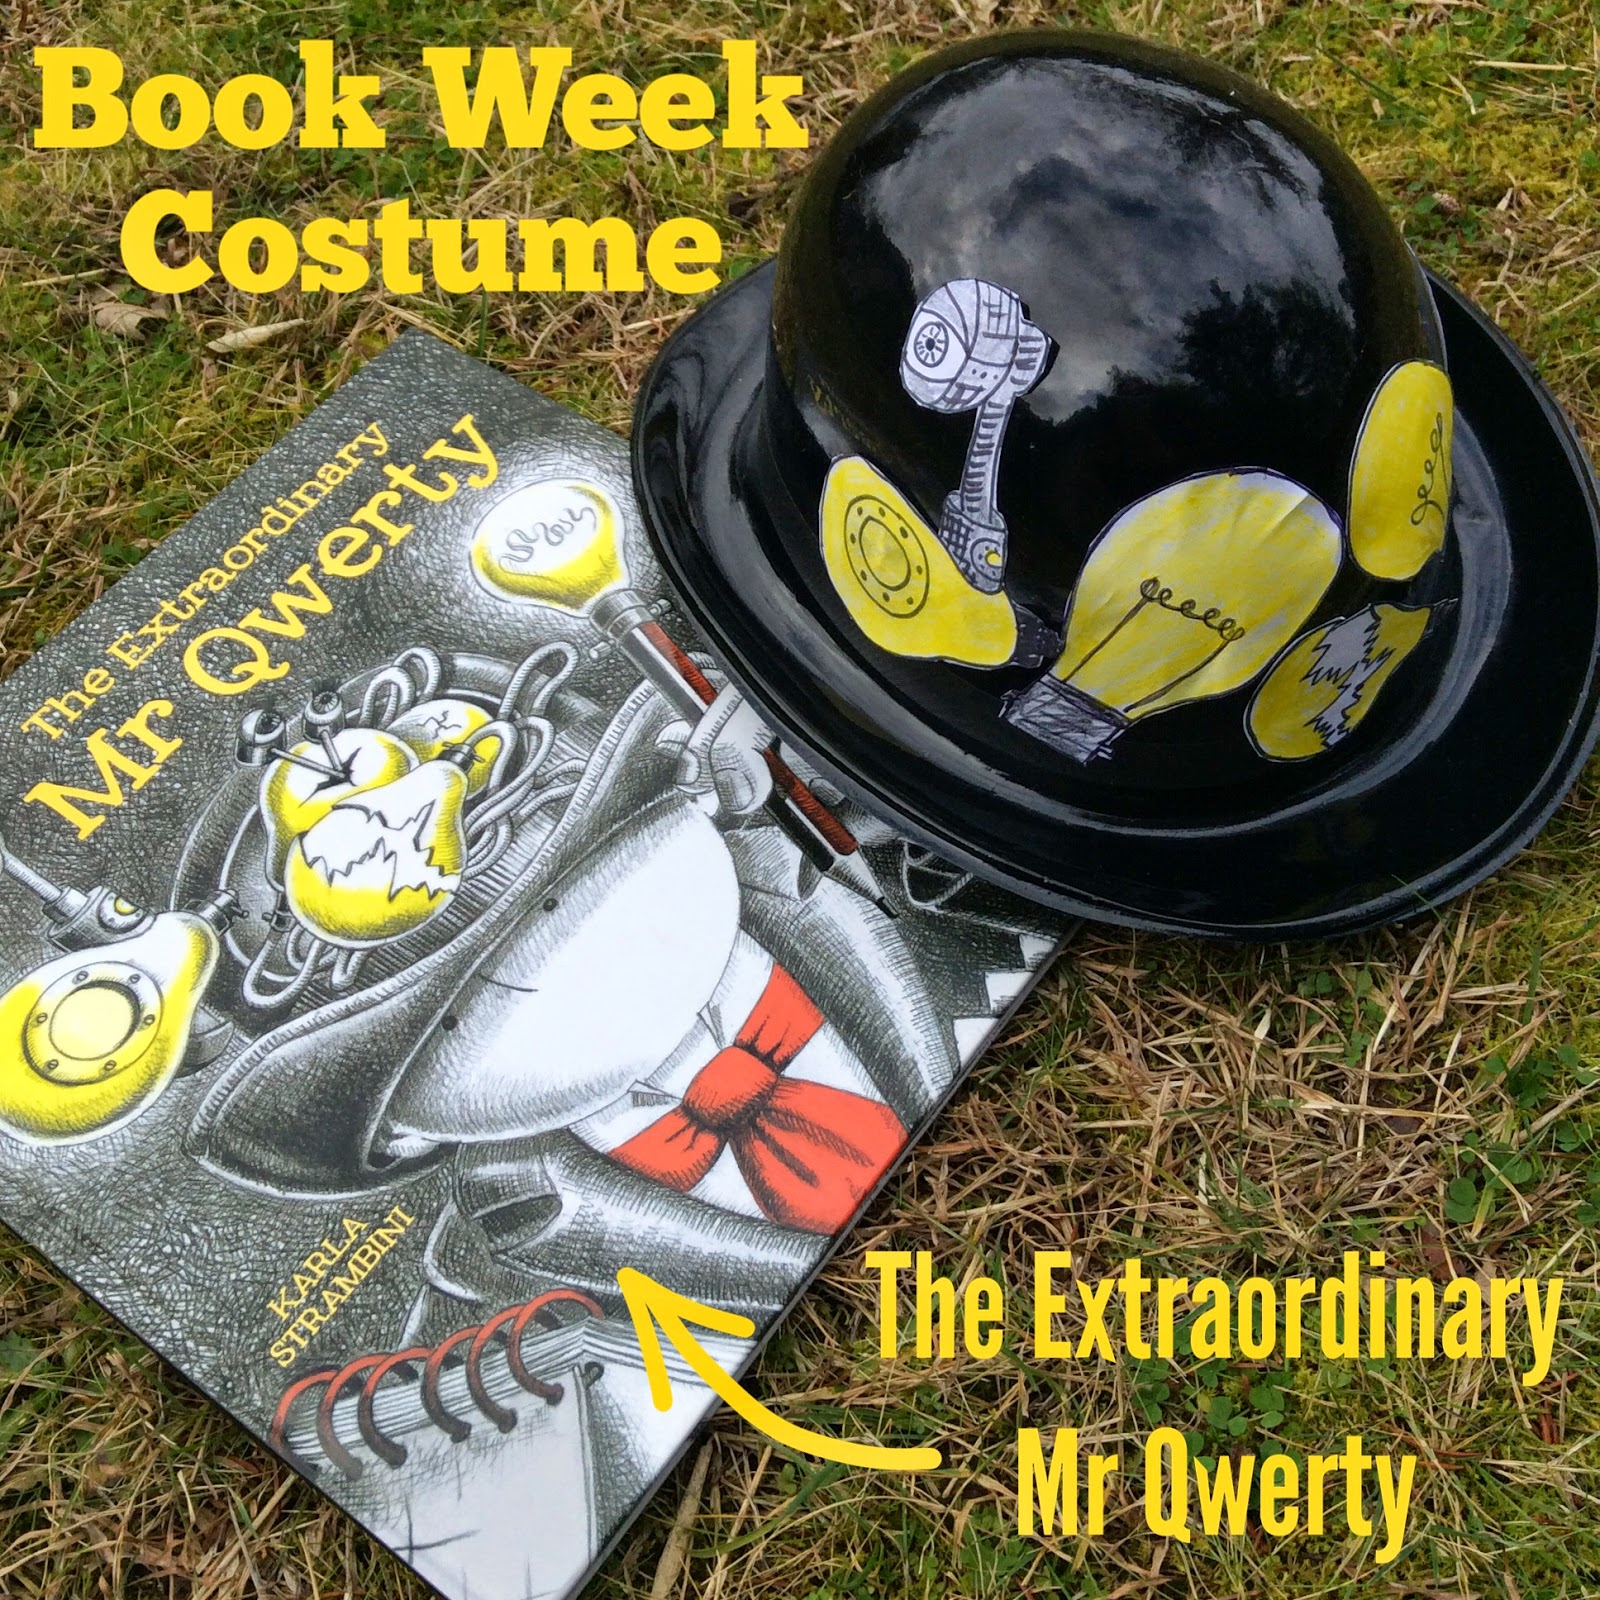 Book Week Parade Costume: The Extraordinary Mr Qwerty